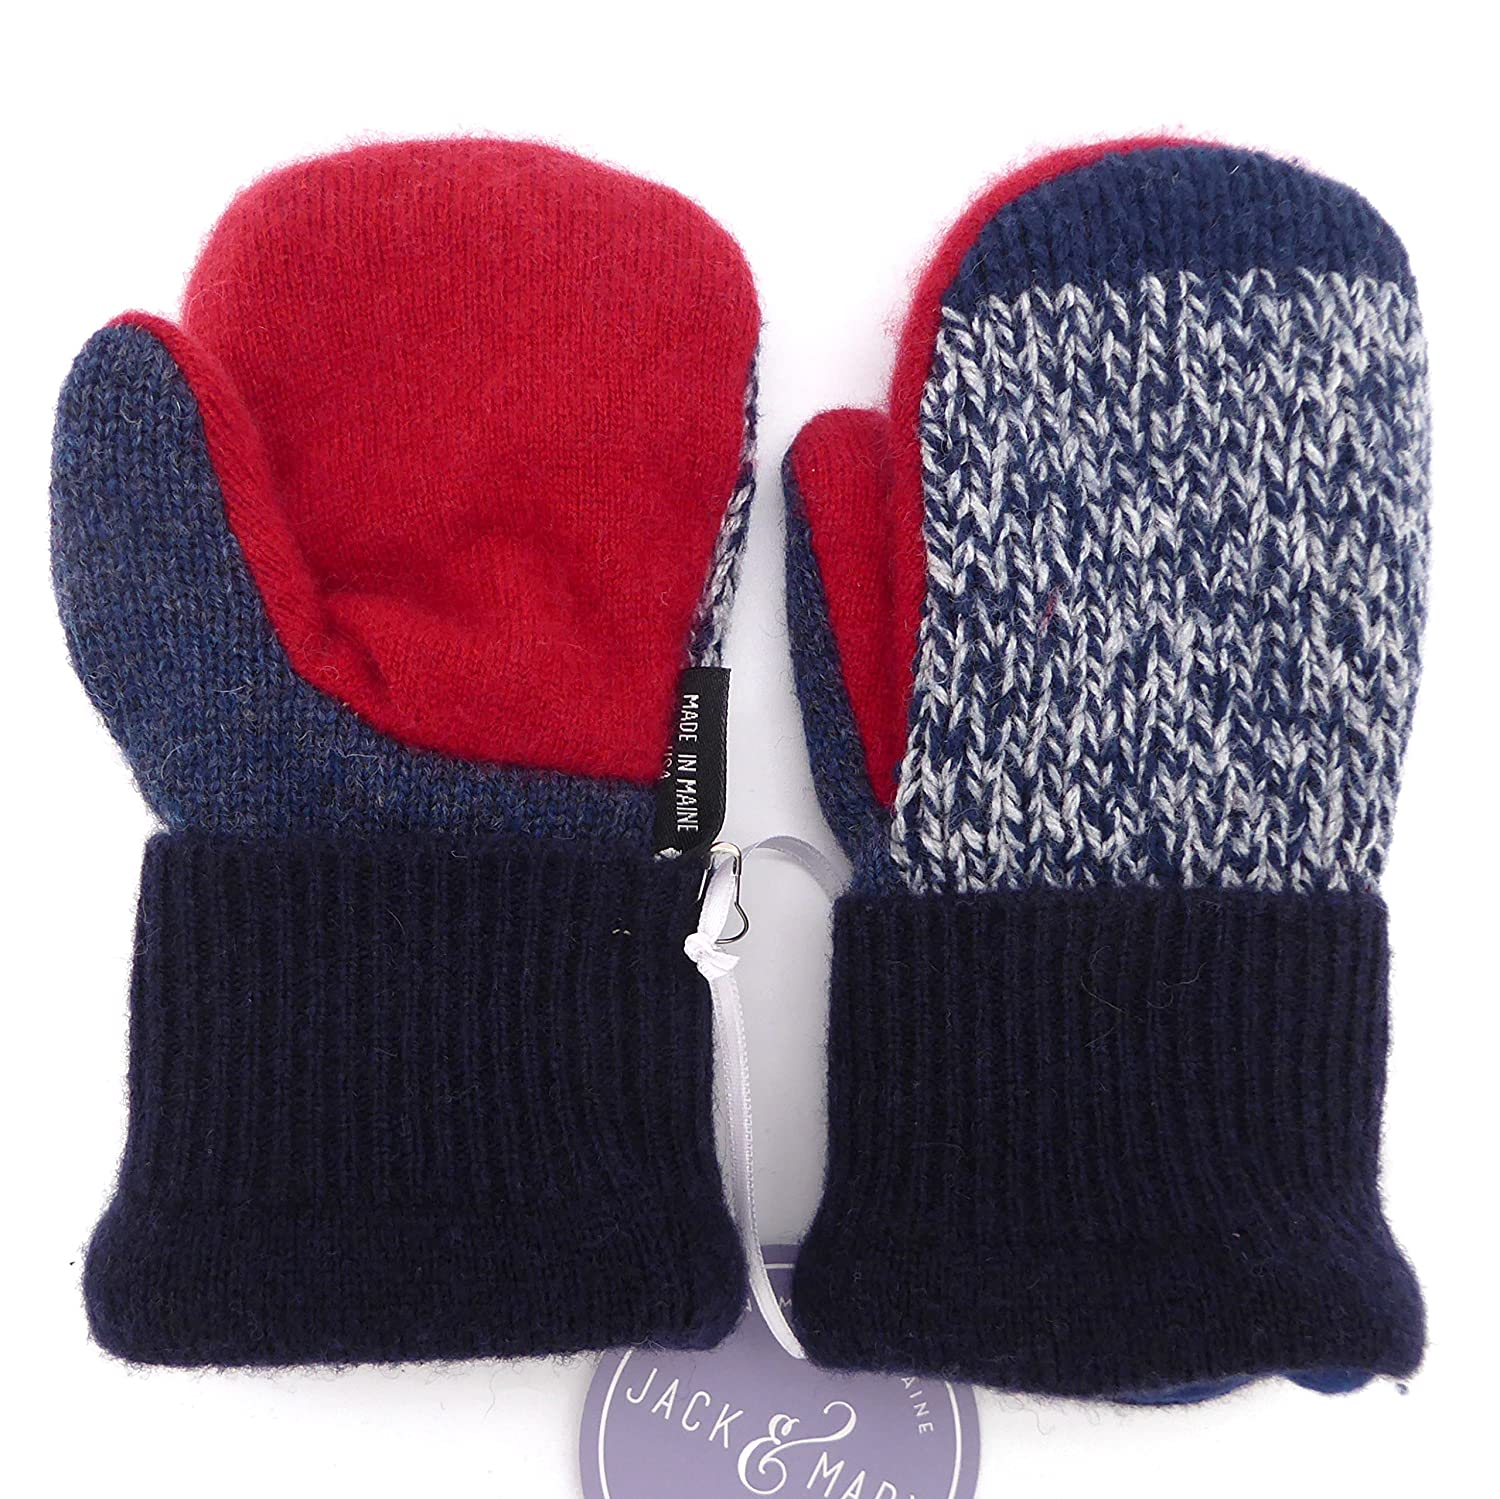 Jack & Mary Designs Handmade Kids Fleece-Lined Wool Mittens, Made from Recycled Sweaters in the USA